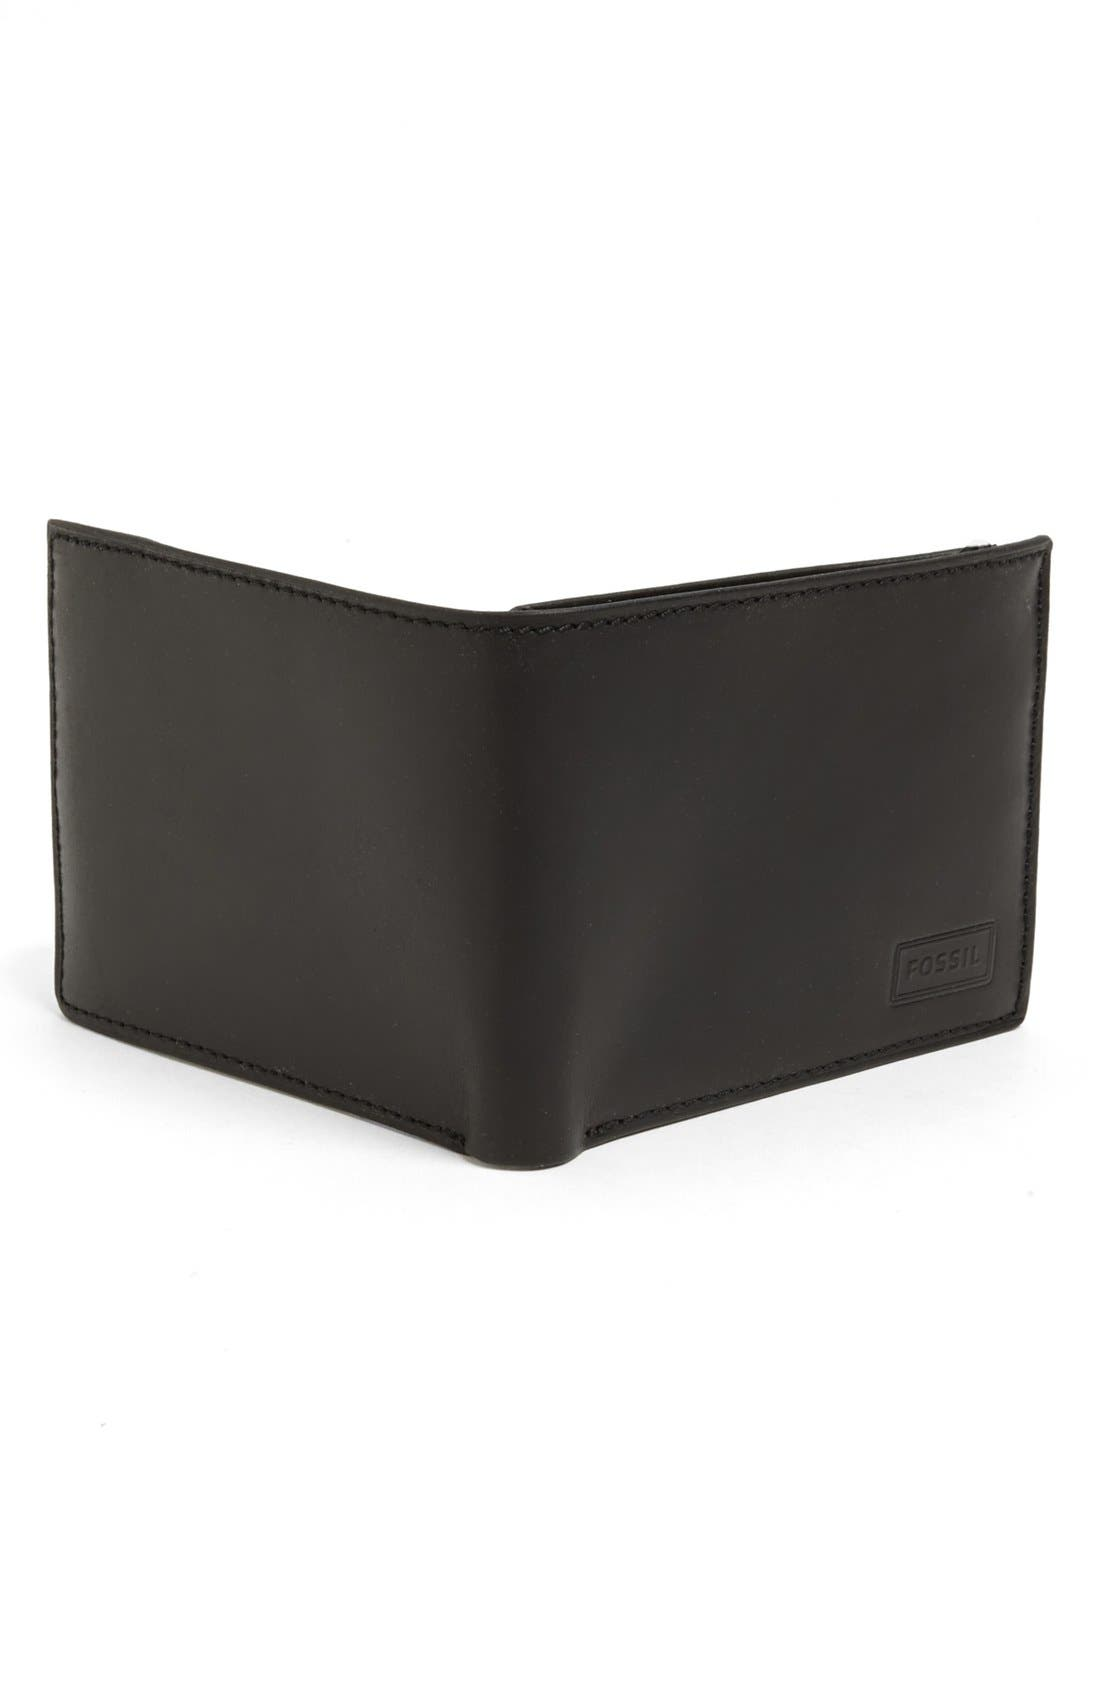 Alternate Image 3  - Fossil 'Traveler' Leather Wallet